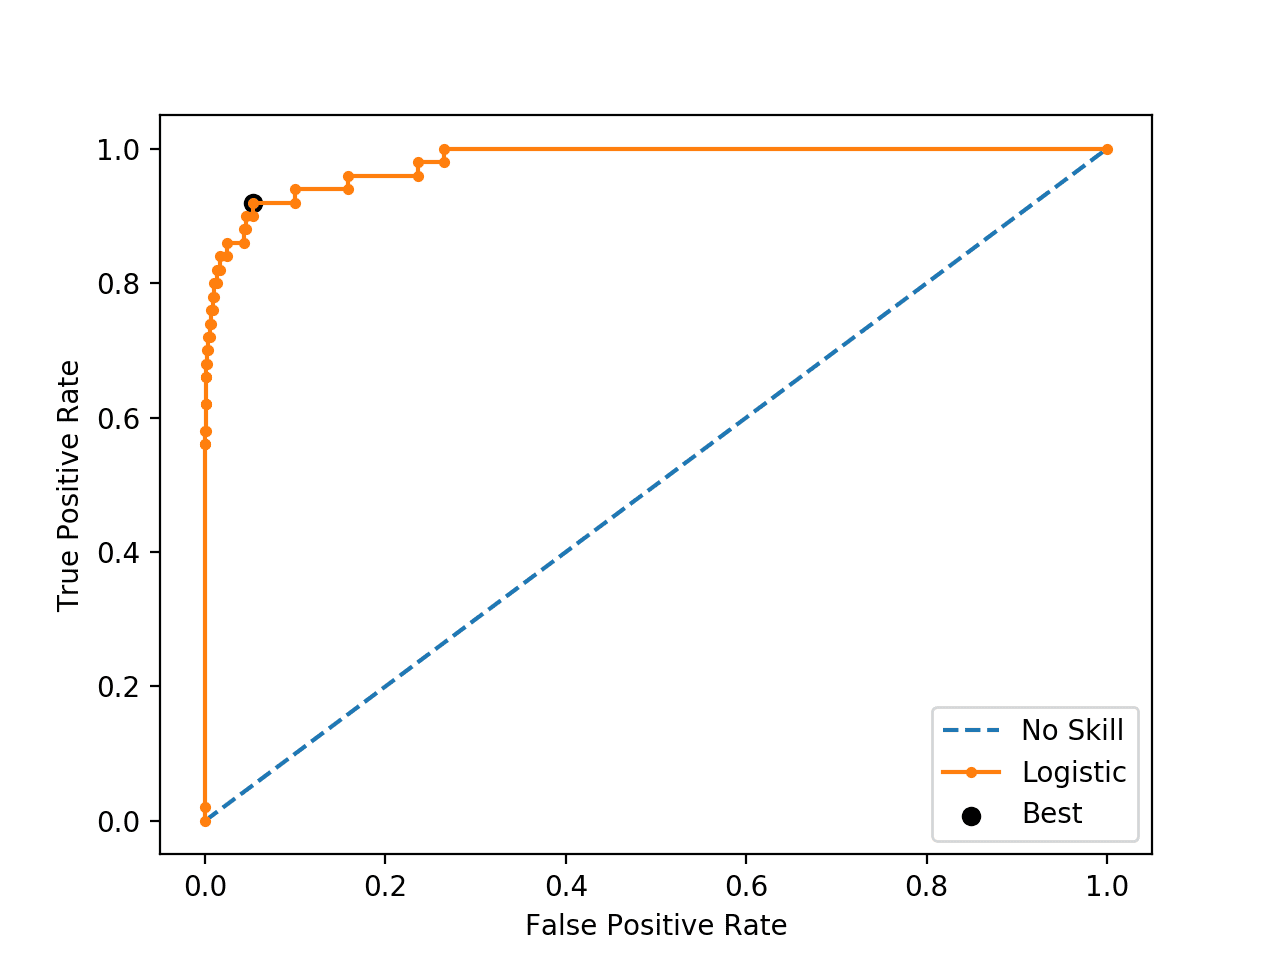 ROC Curve Line Plot for Logistic Regression Model for Imbalanced Classification With the Optimal Threshold